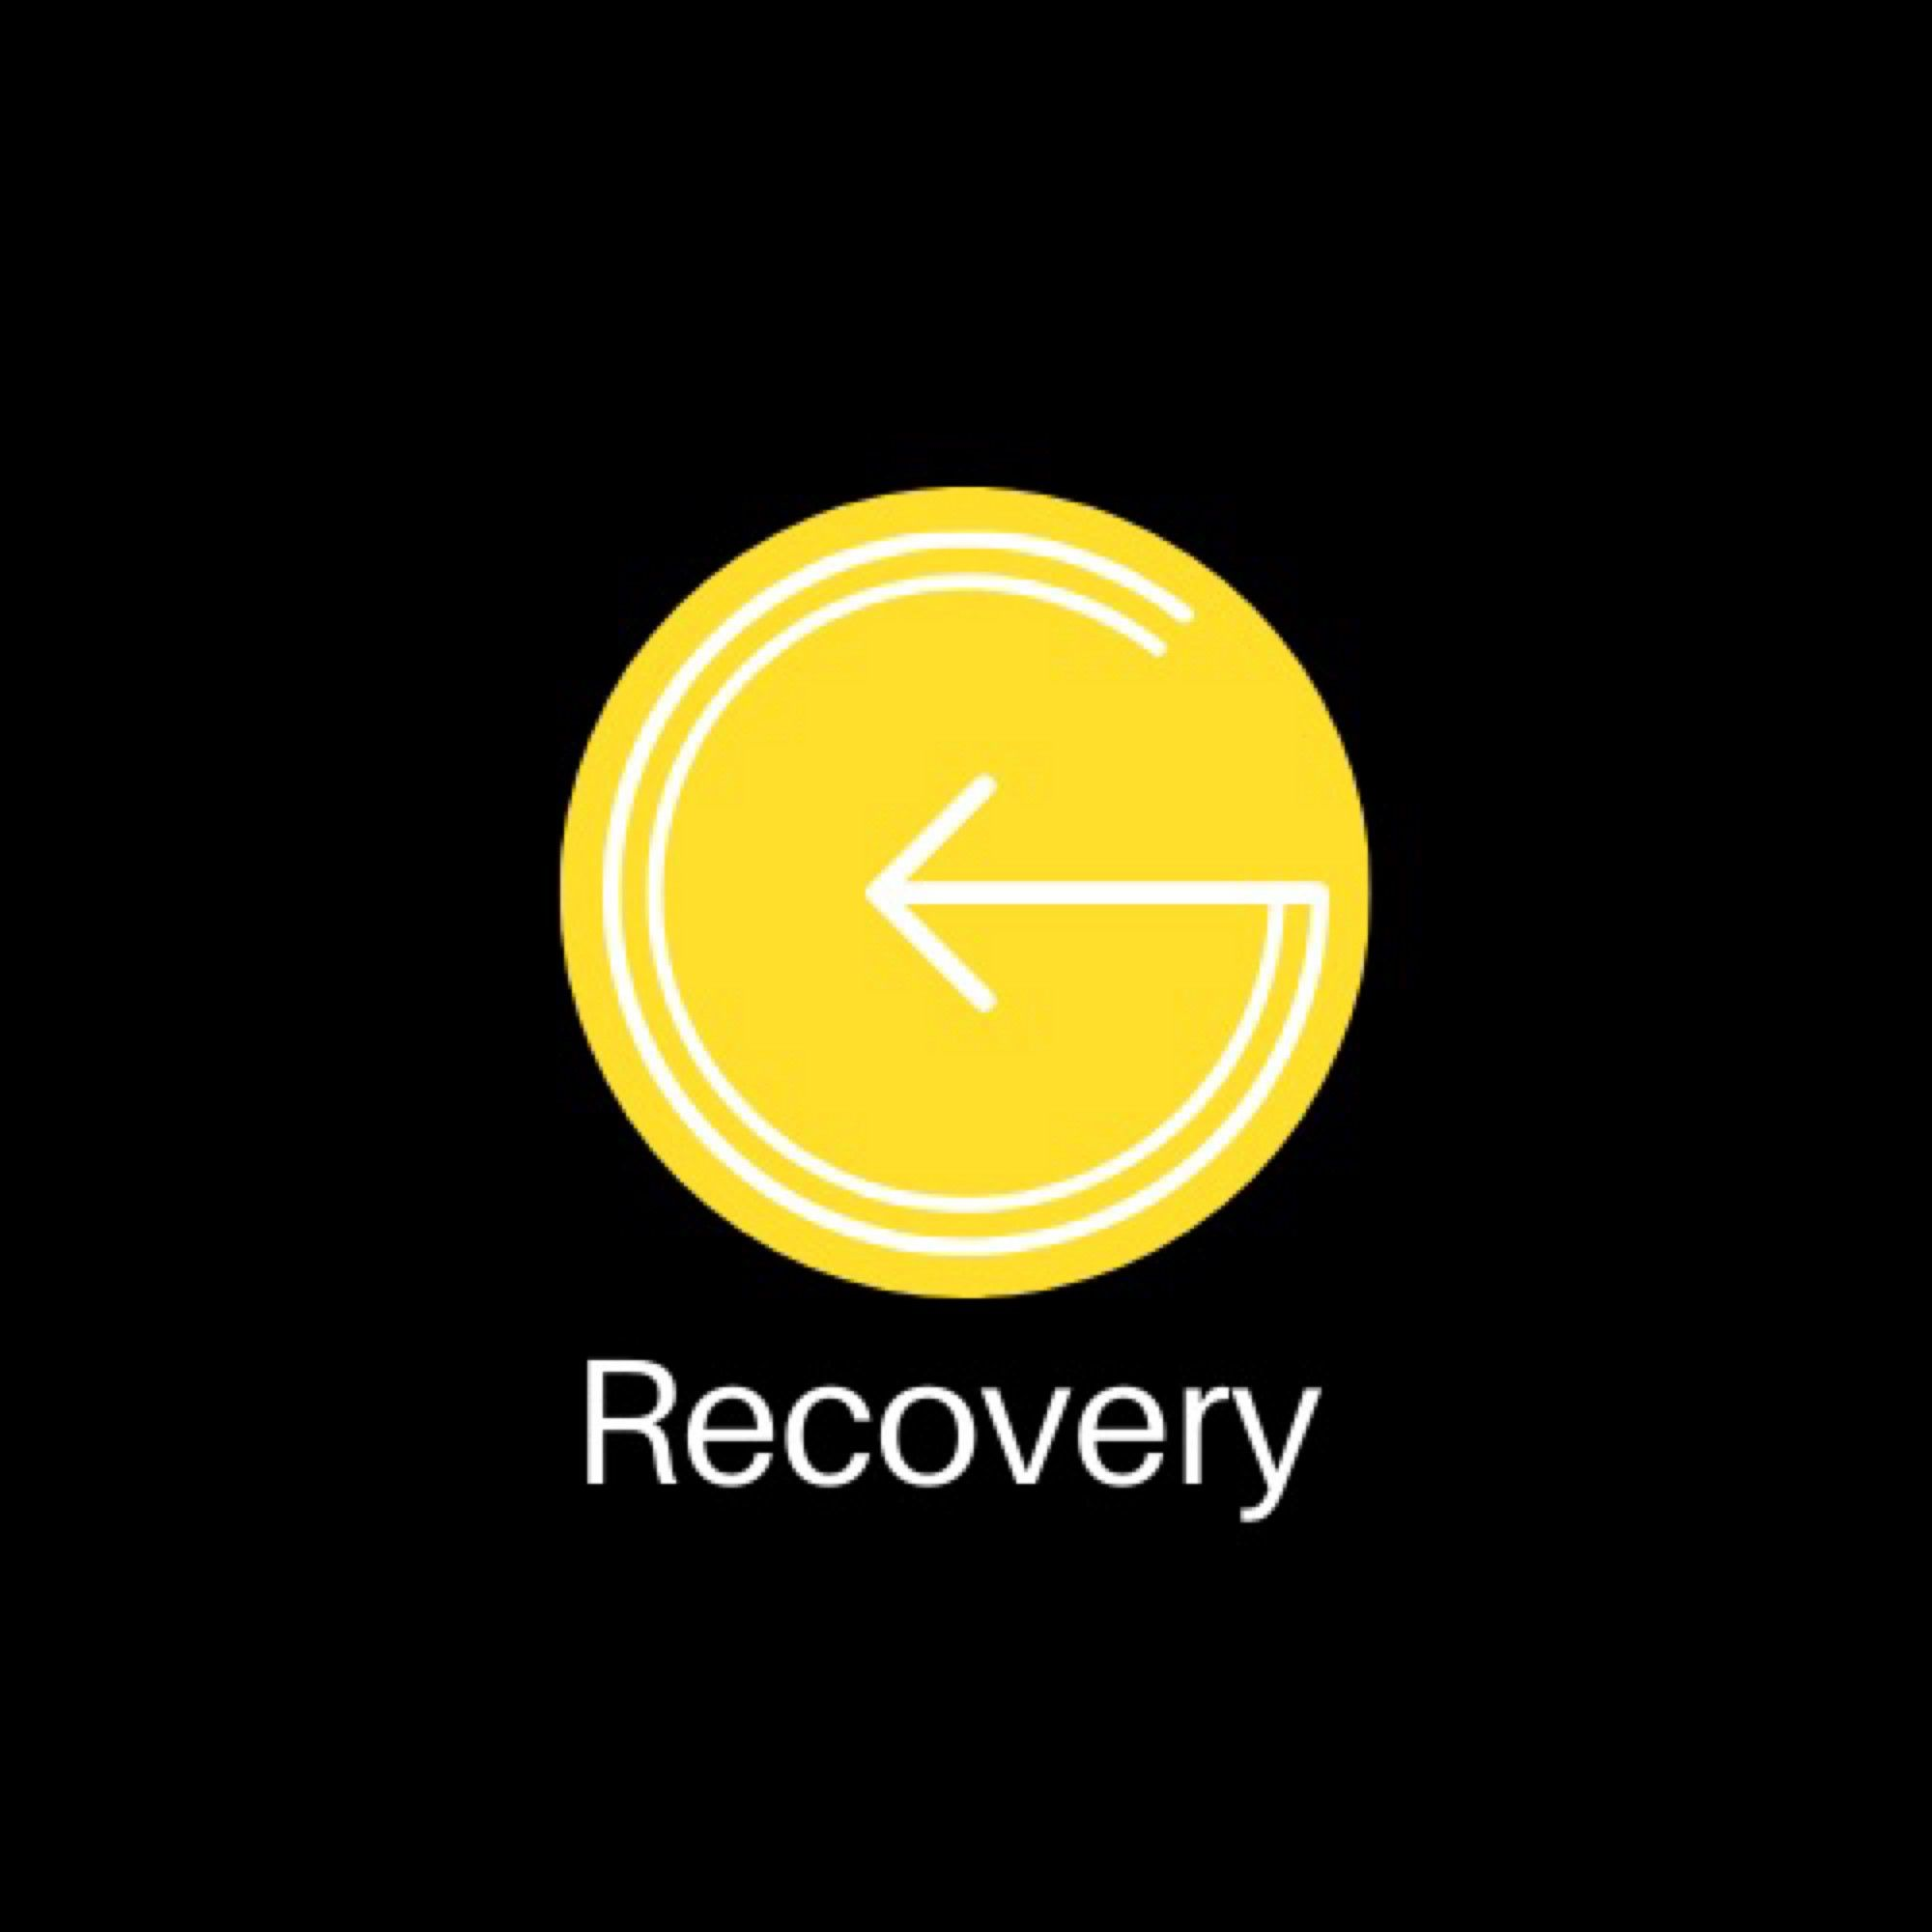 SESSION 7 - The Cycle Of Addiction